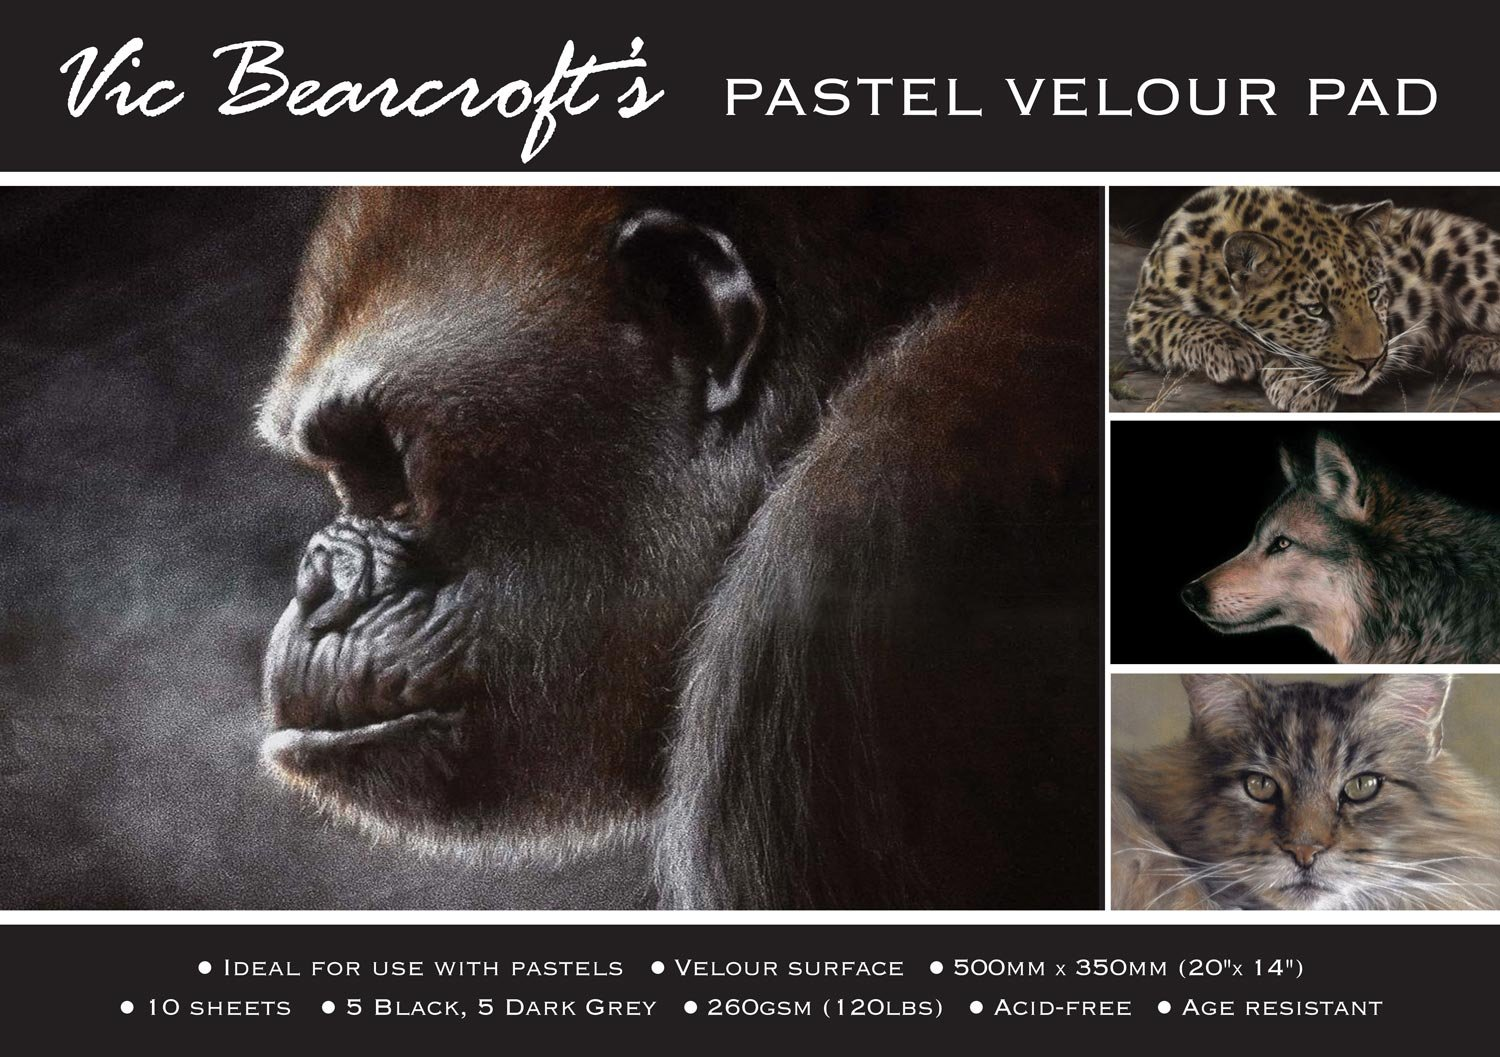 Vic Bearcroft's Pastel Velour Pad - Regular Black and Dark Grey (250mm x 350mm) Tal Media Ltd T/a Artcoe